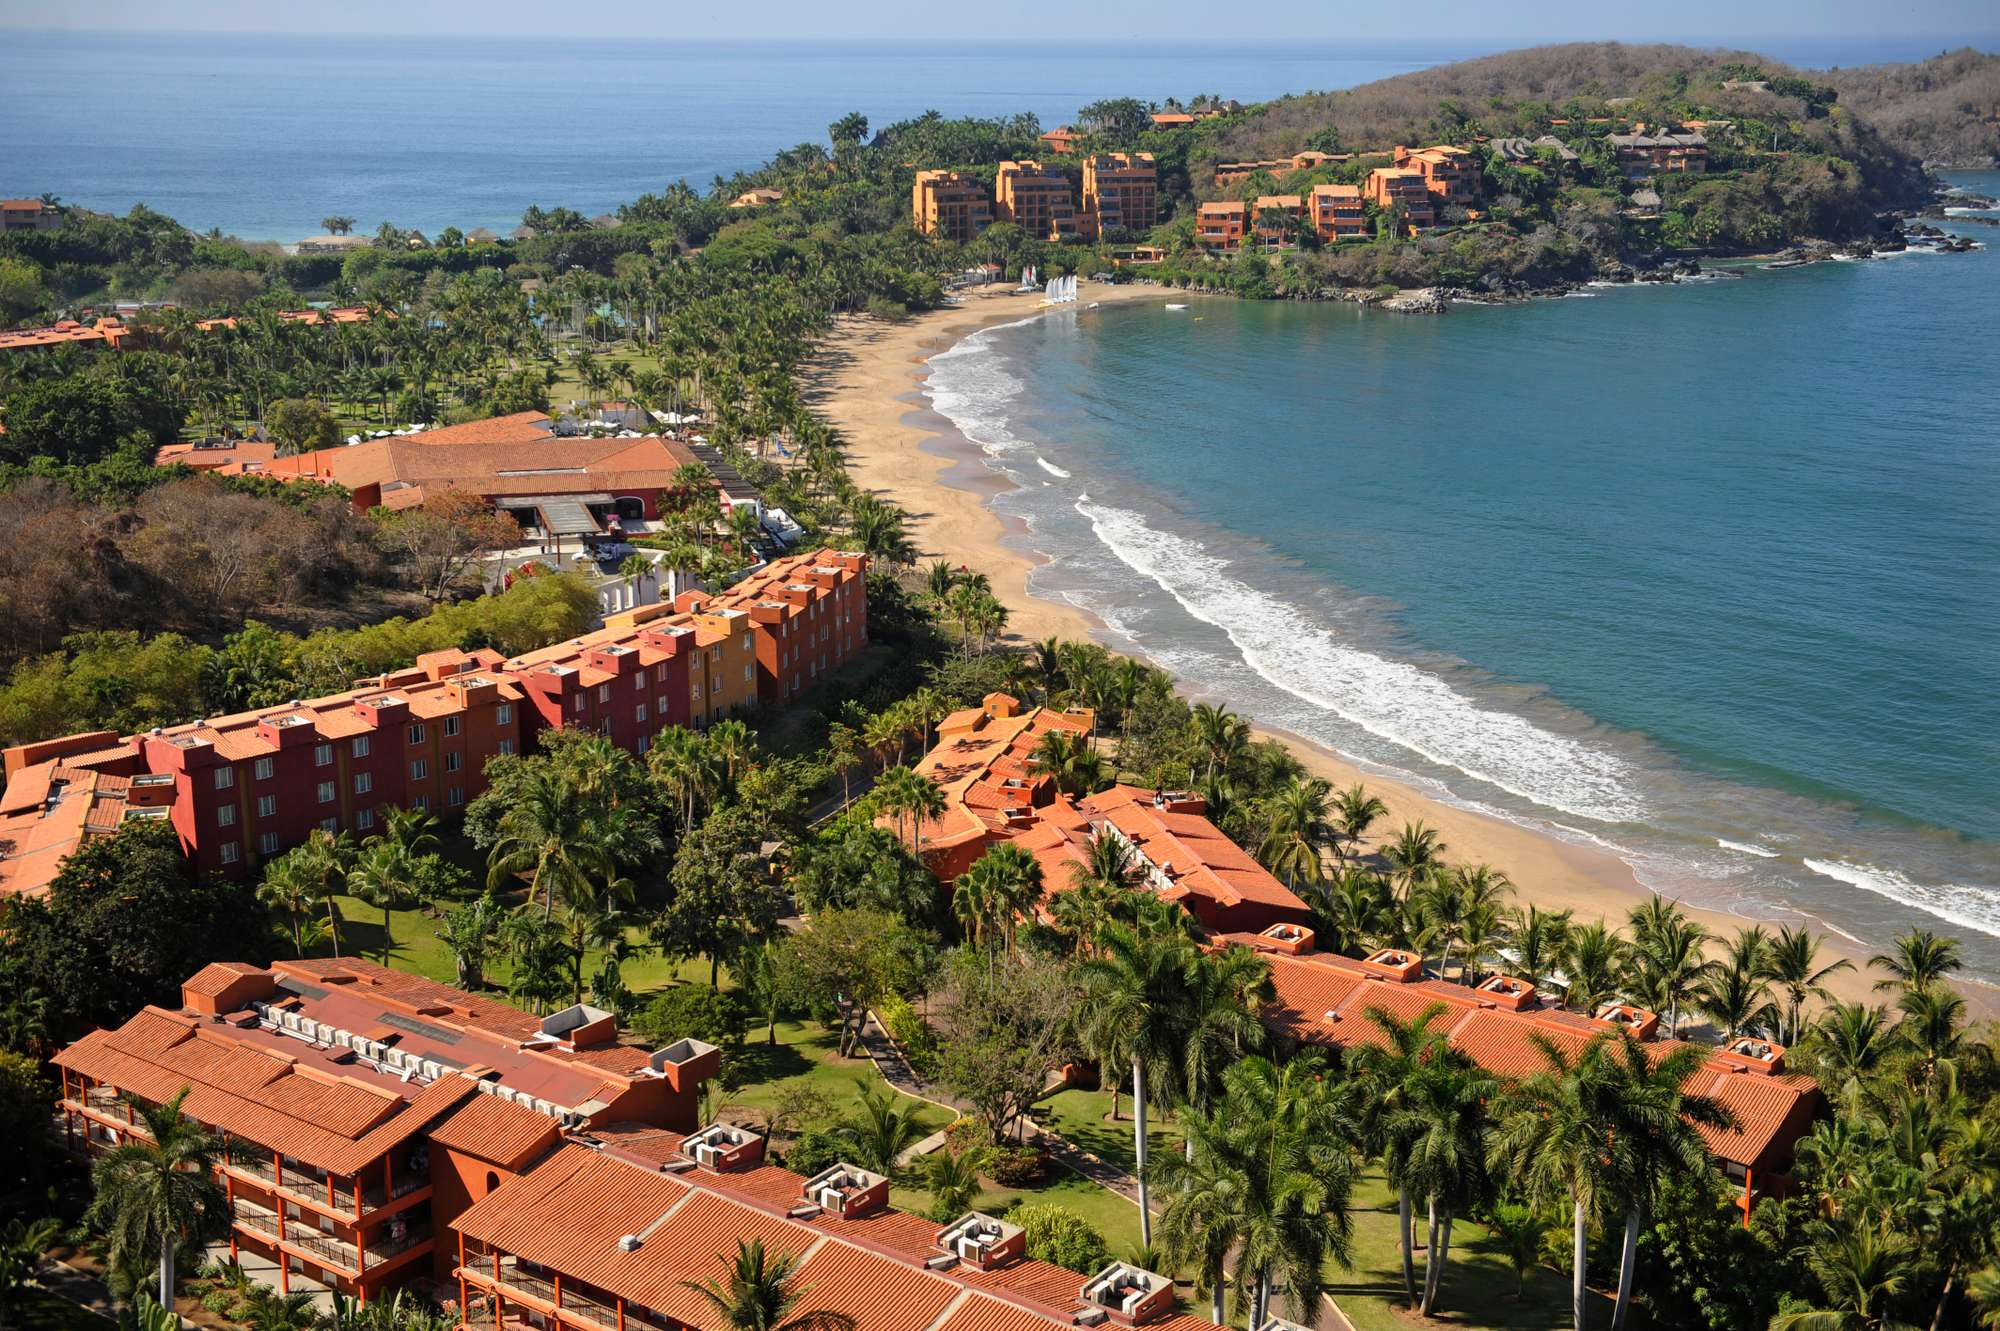 Https  ns.clubmed.com icp 1 media 01.villages 1.1mer ixtapa pacific 64 photos ixtcc112046